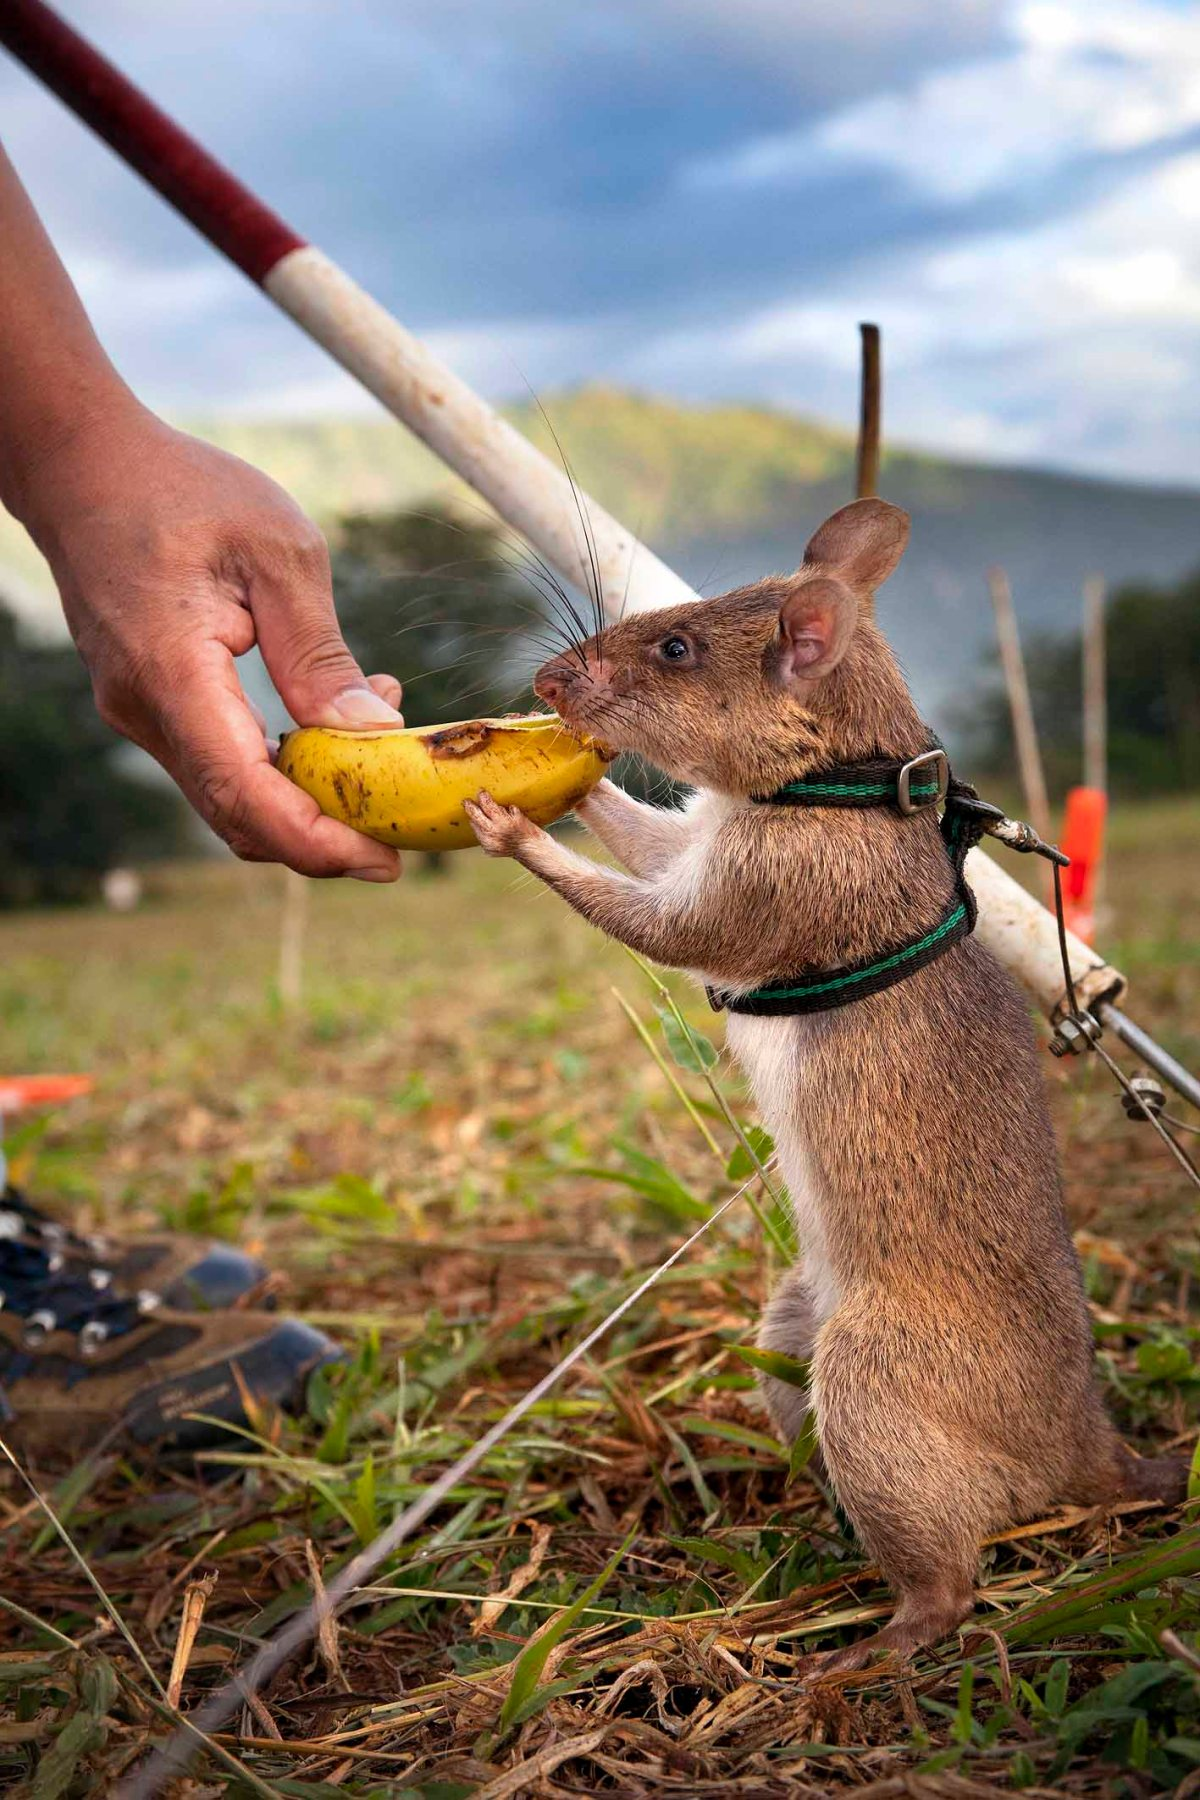 The year of the rat? Meet the HeroRAT